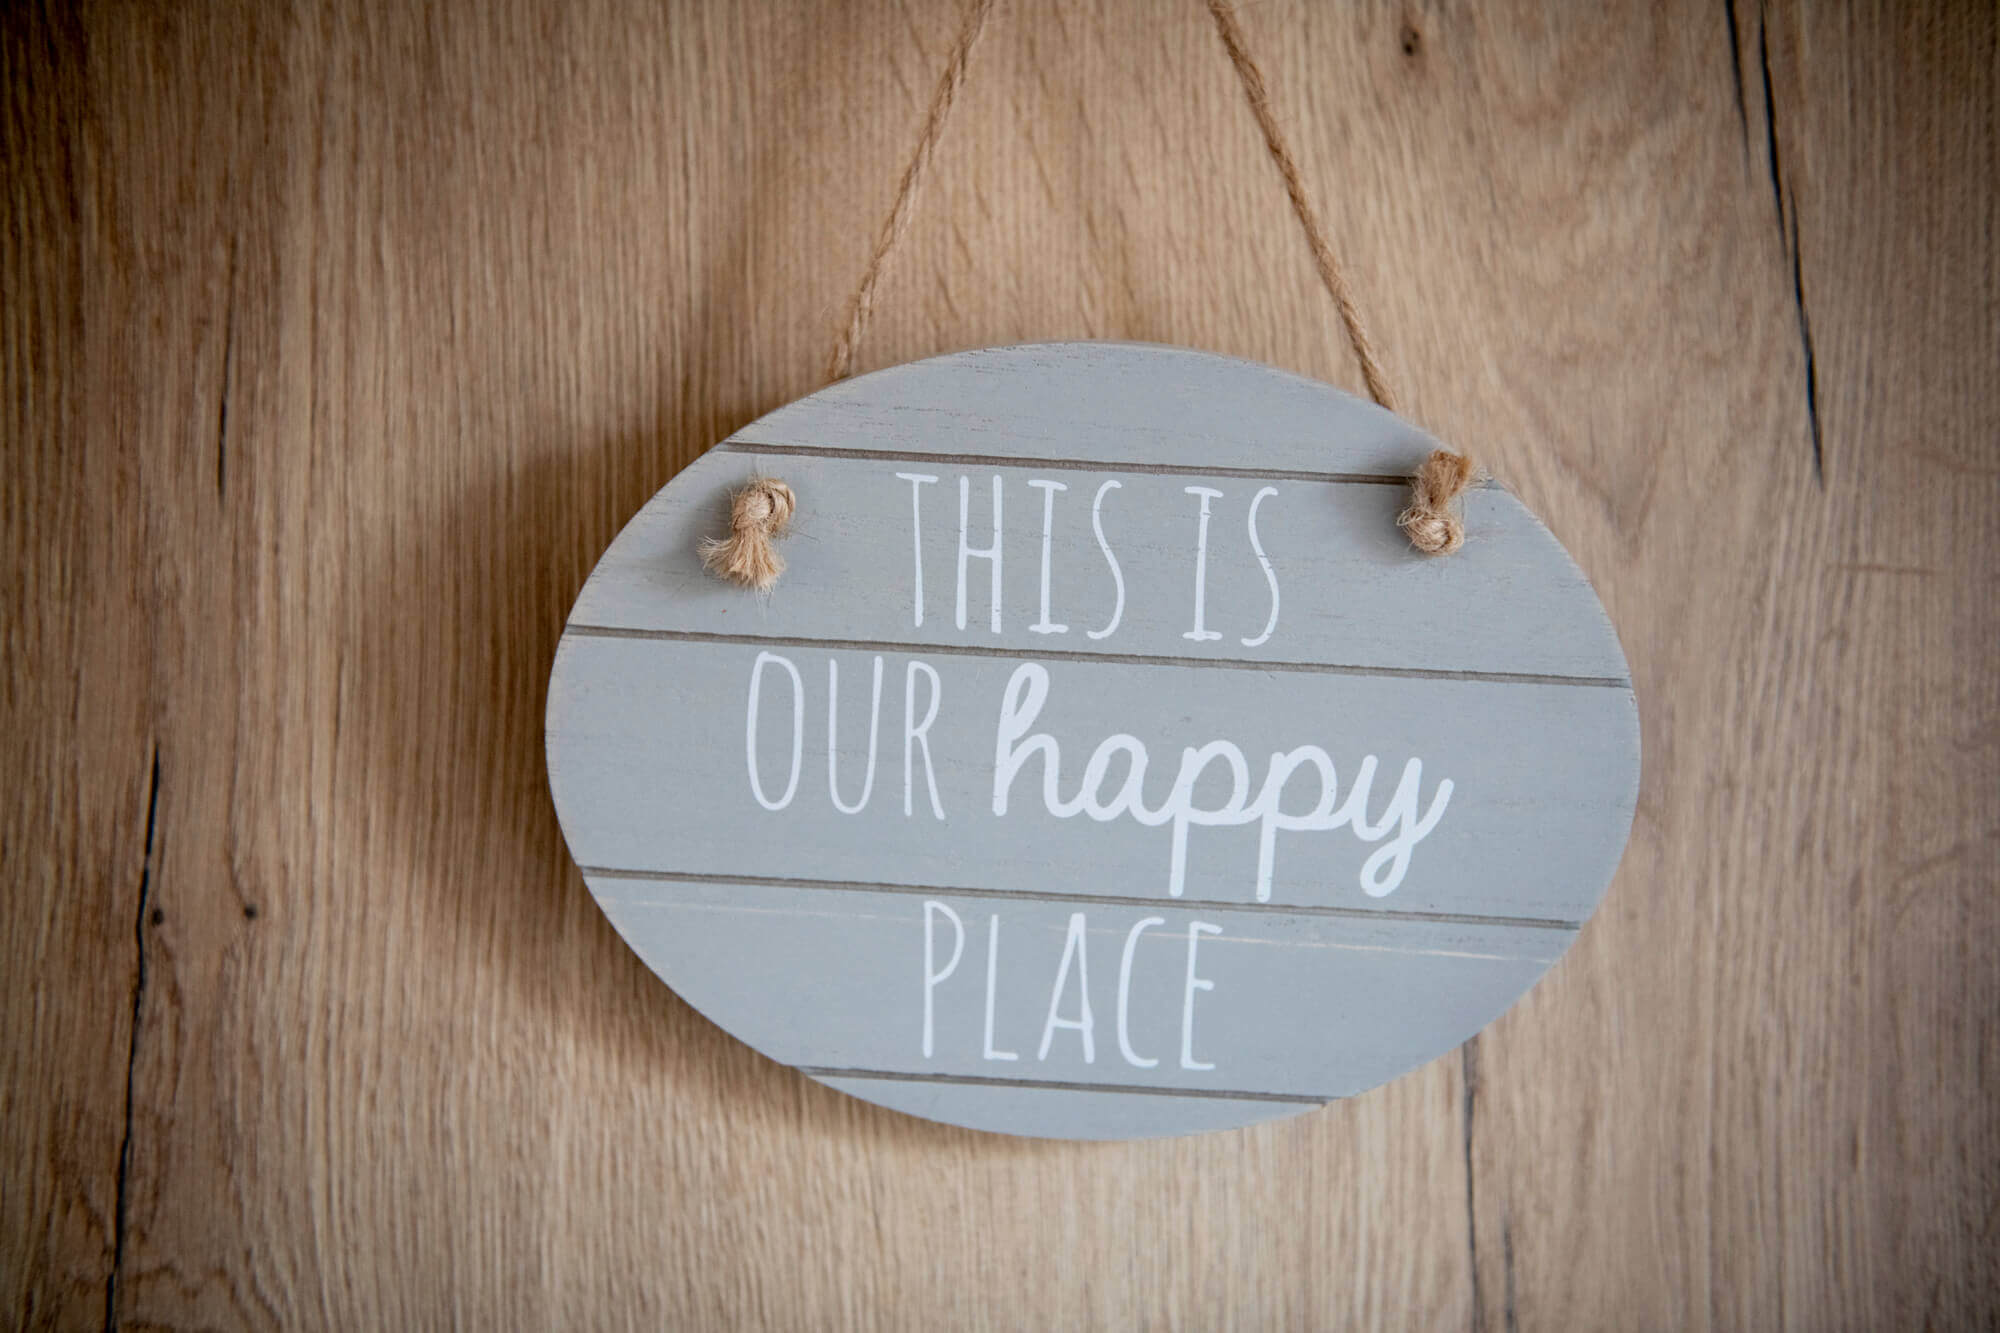 this is our happy place plaque